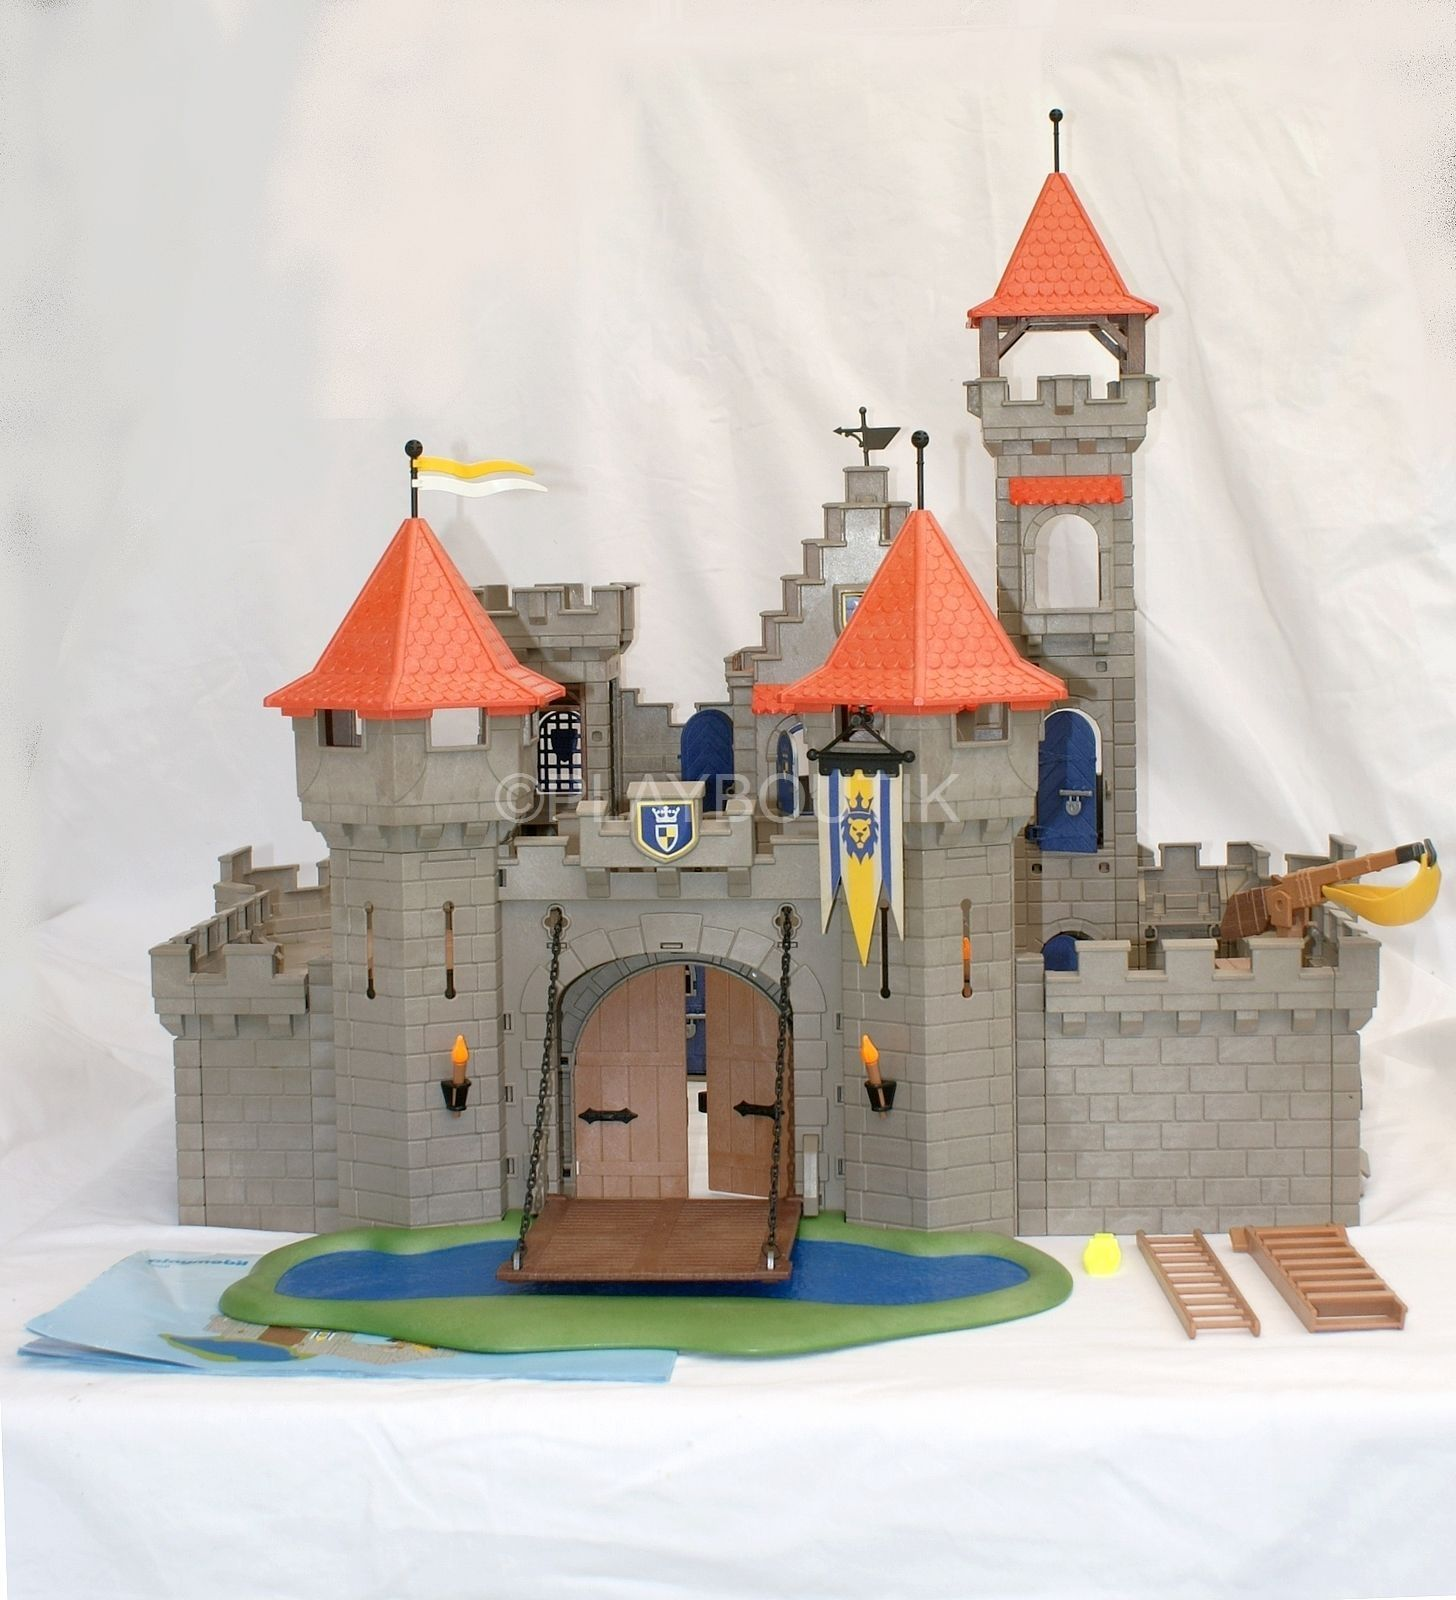 Playmobil chevalier ch teau fort 3268 moyen age for Plan chateau fort playmobil